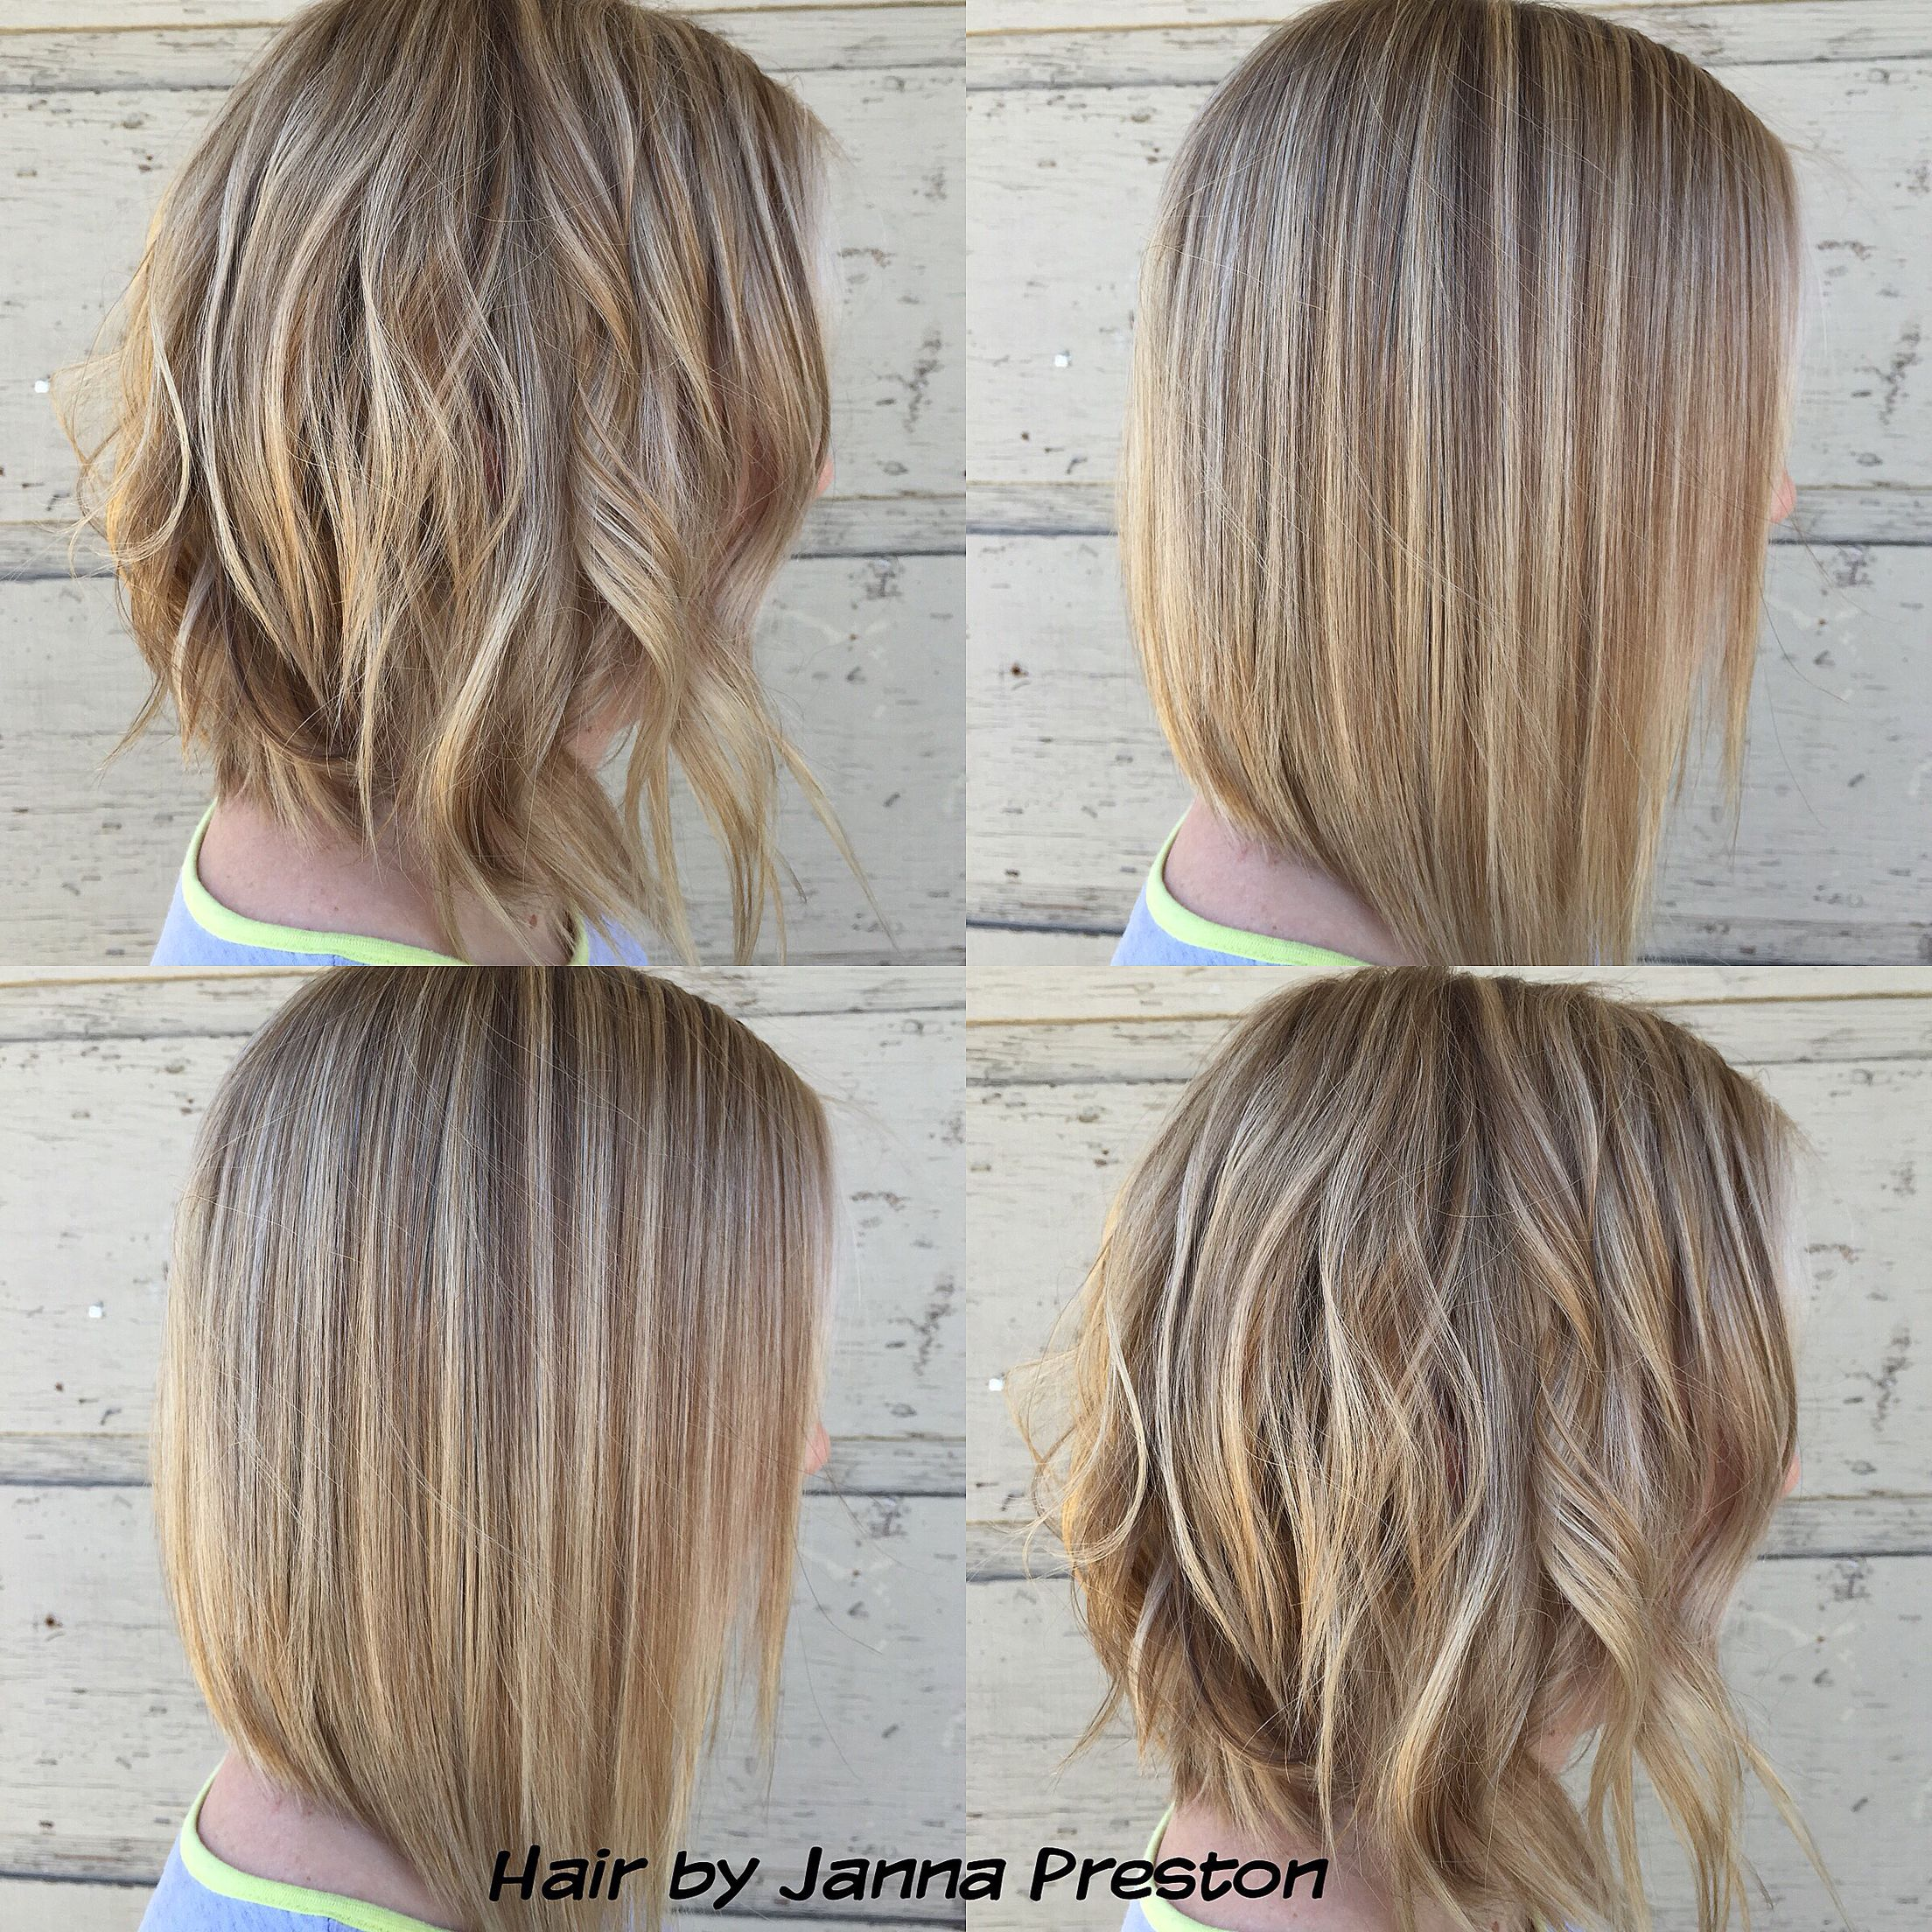 Highlights And Lowlights With An Overlay Paul Mitchell Xg 9pn